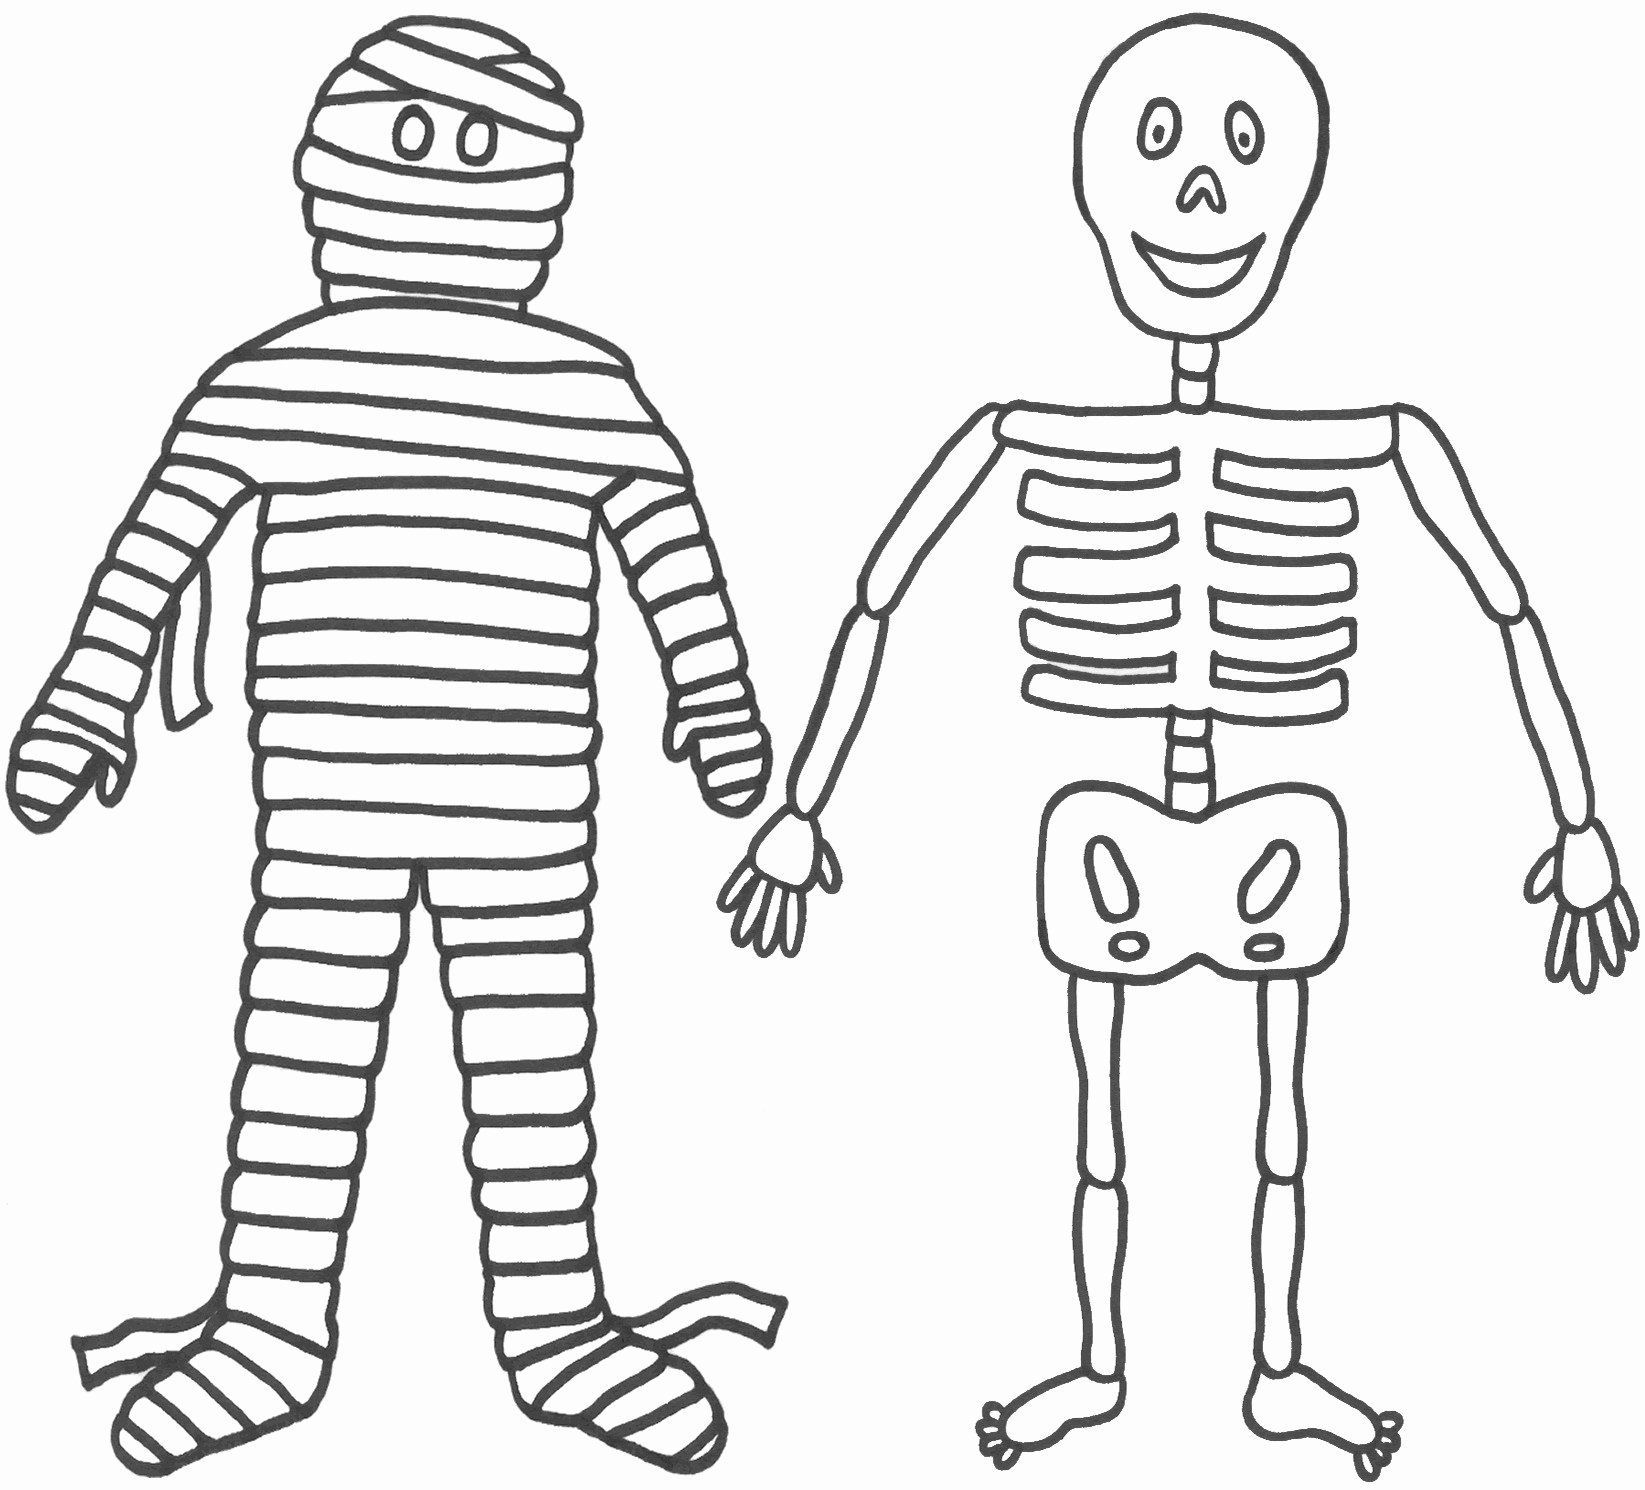 Skeleton Coloring Pages To Print Awesome Printable Coloring Pages Page 21 Of 204 Awesom Halloween Coloring Coloring Pages To Print Halloween Coloring Pages